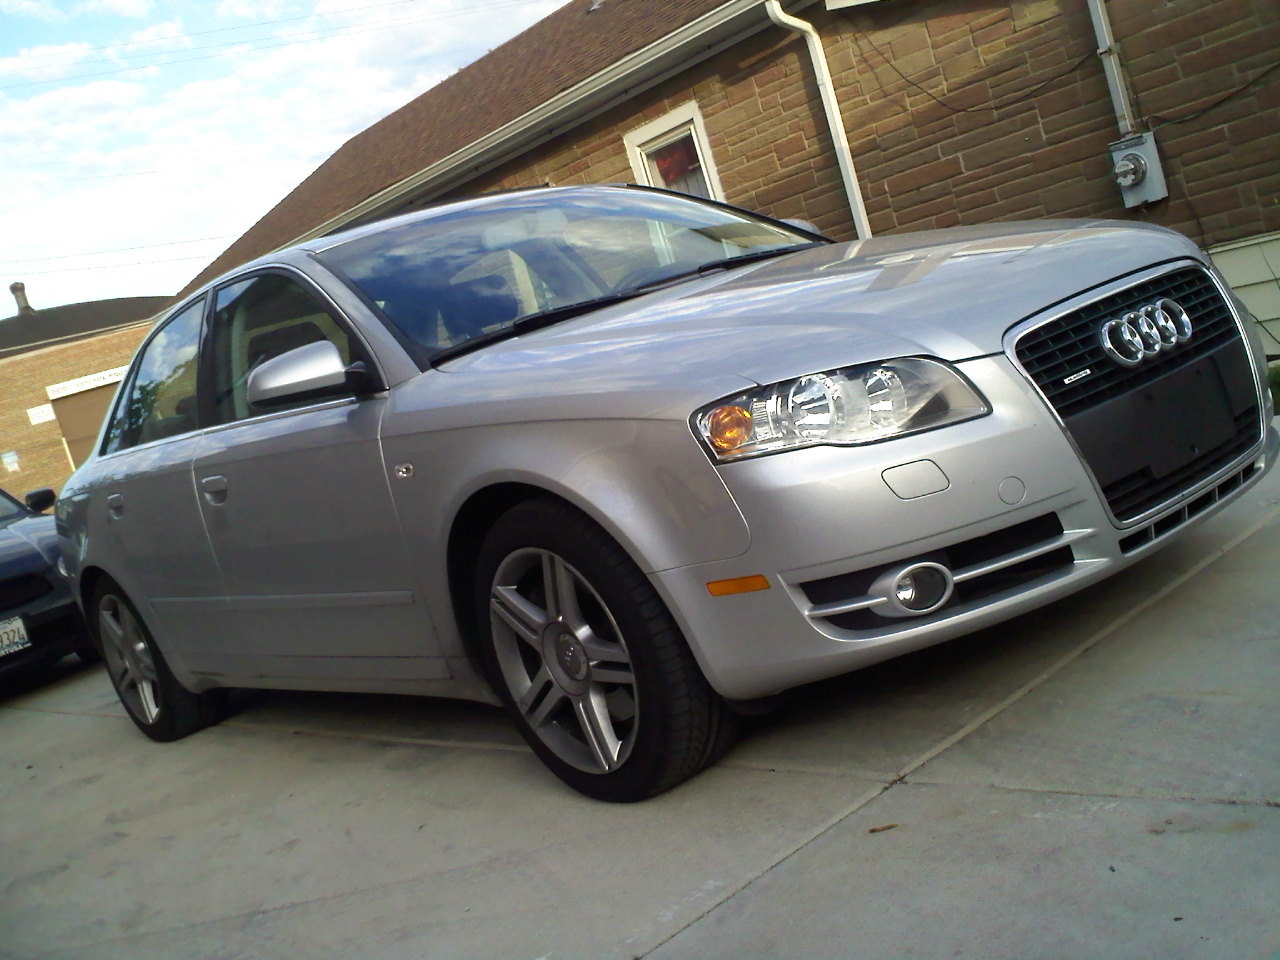 Audi A4 Questions - i want to buy performance parts for my 2005 ...